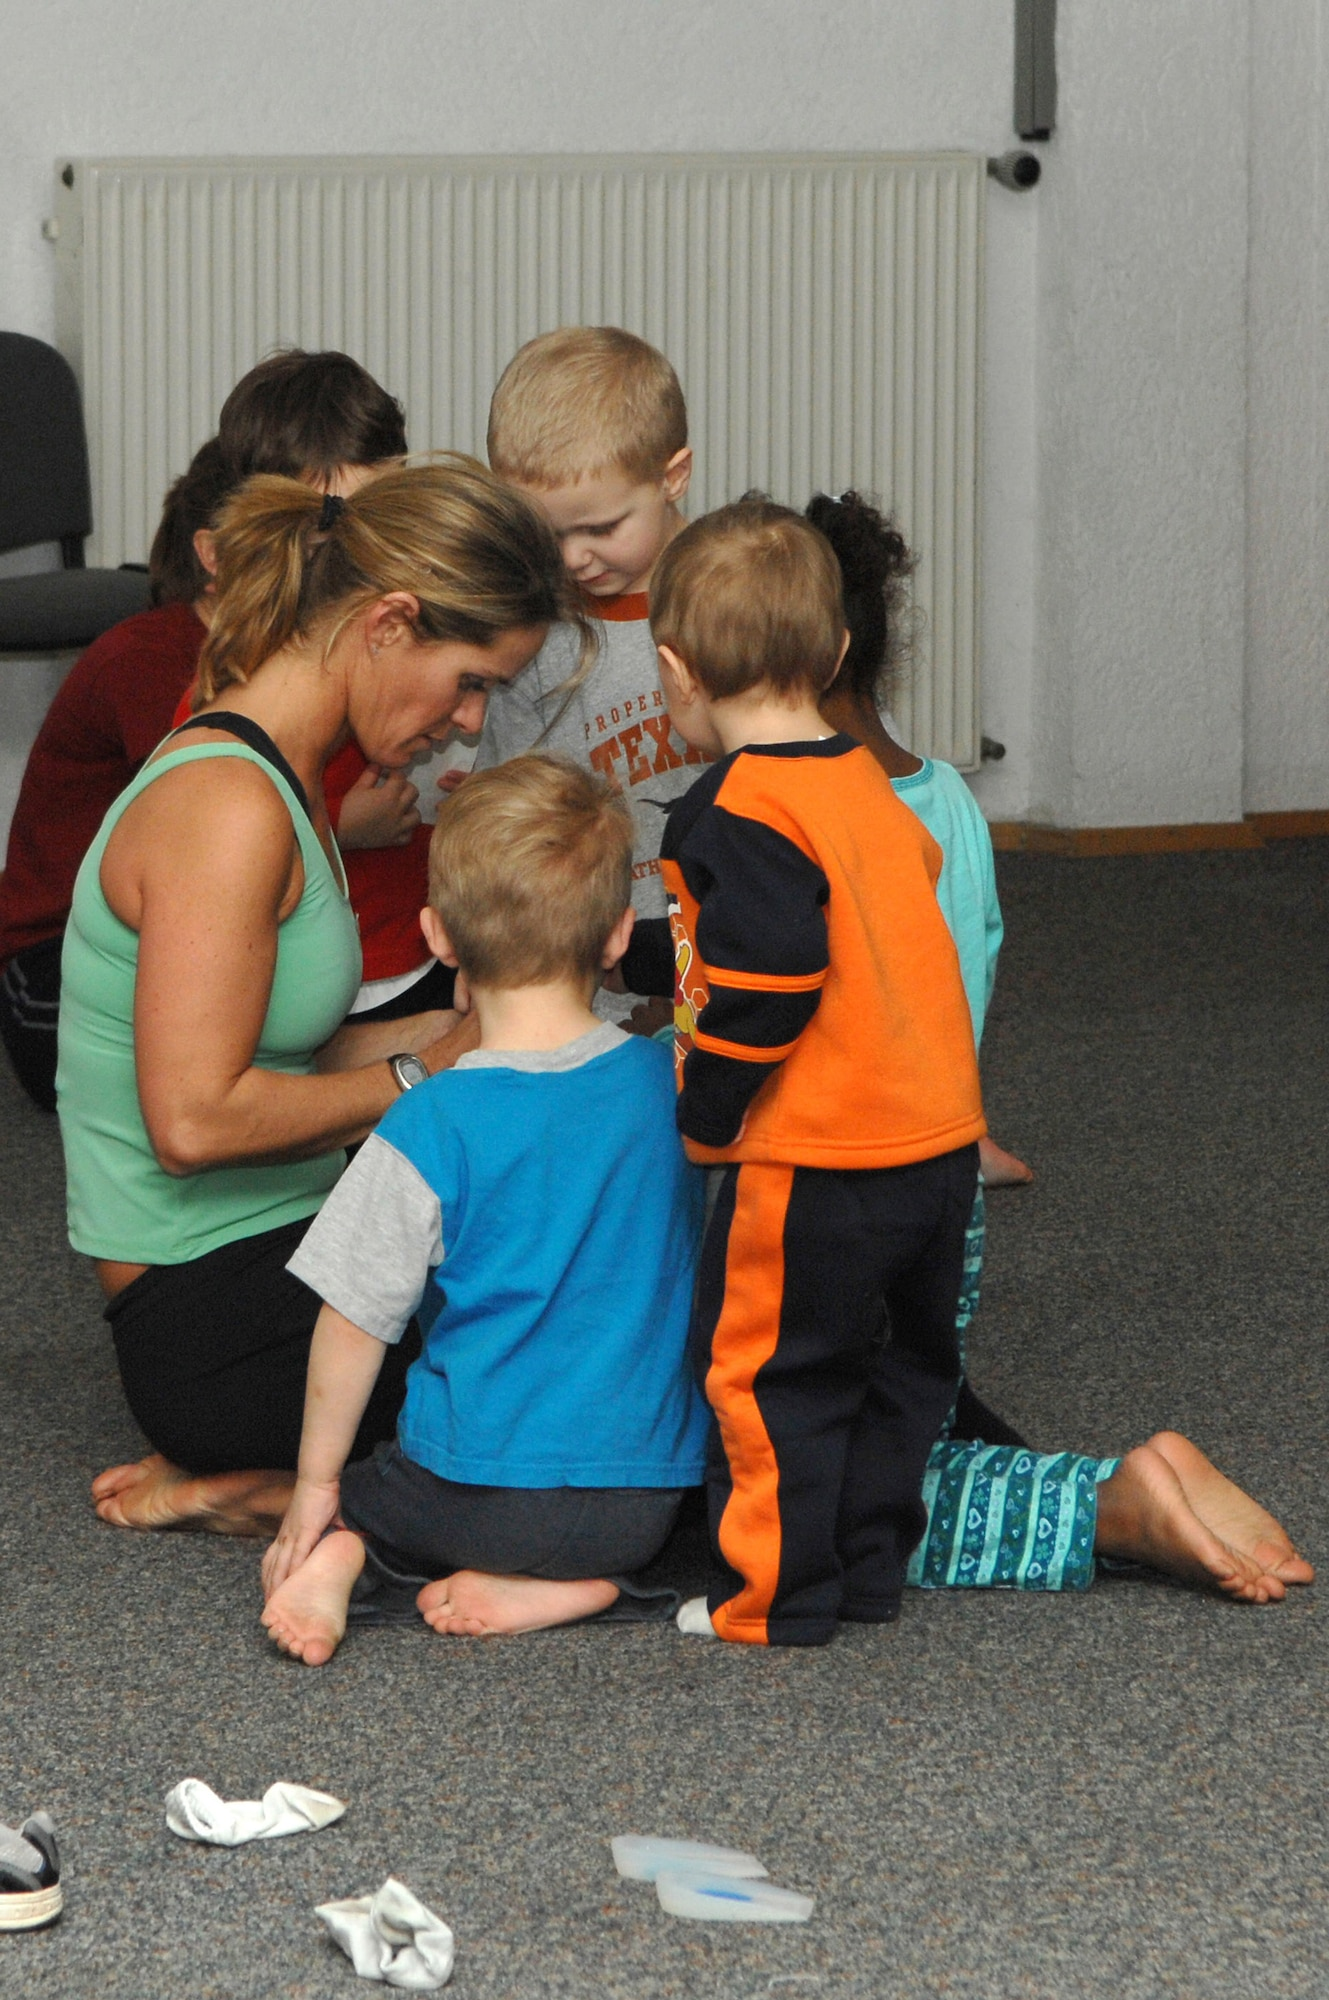 Renee Champagne, (left), hands out stickers to the children at the end of her Mommy and Me Yoga and Fitness class, Jan.18 at the Vogelweh Community Center. Ms. Champagne is the instructor for the class. (U.S. Air Force photo/Senior Airman Megan M. Carrico)